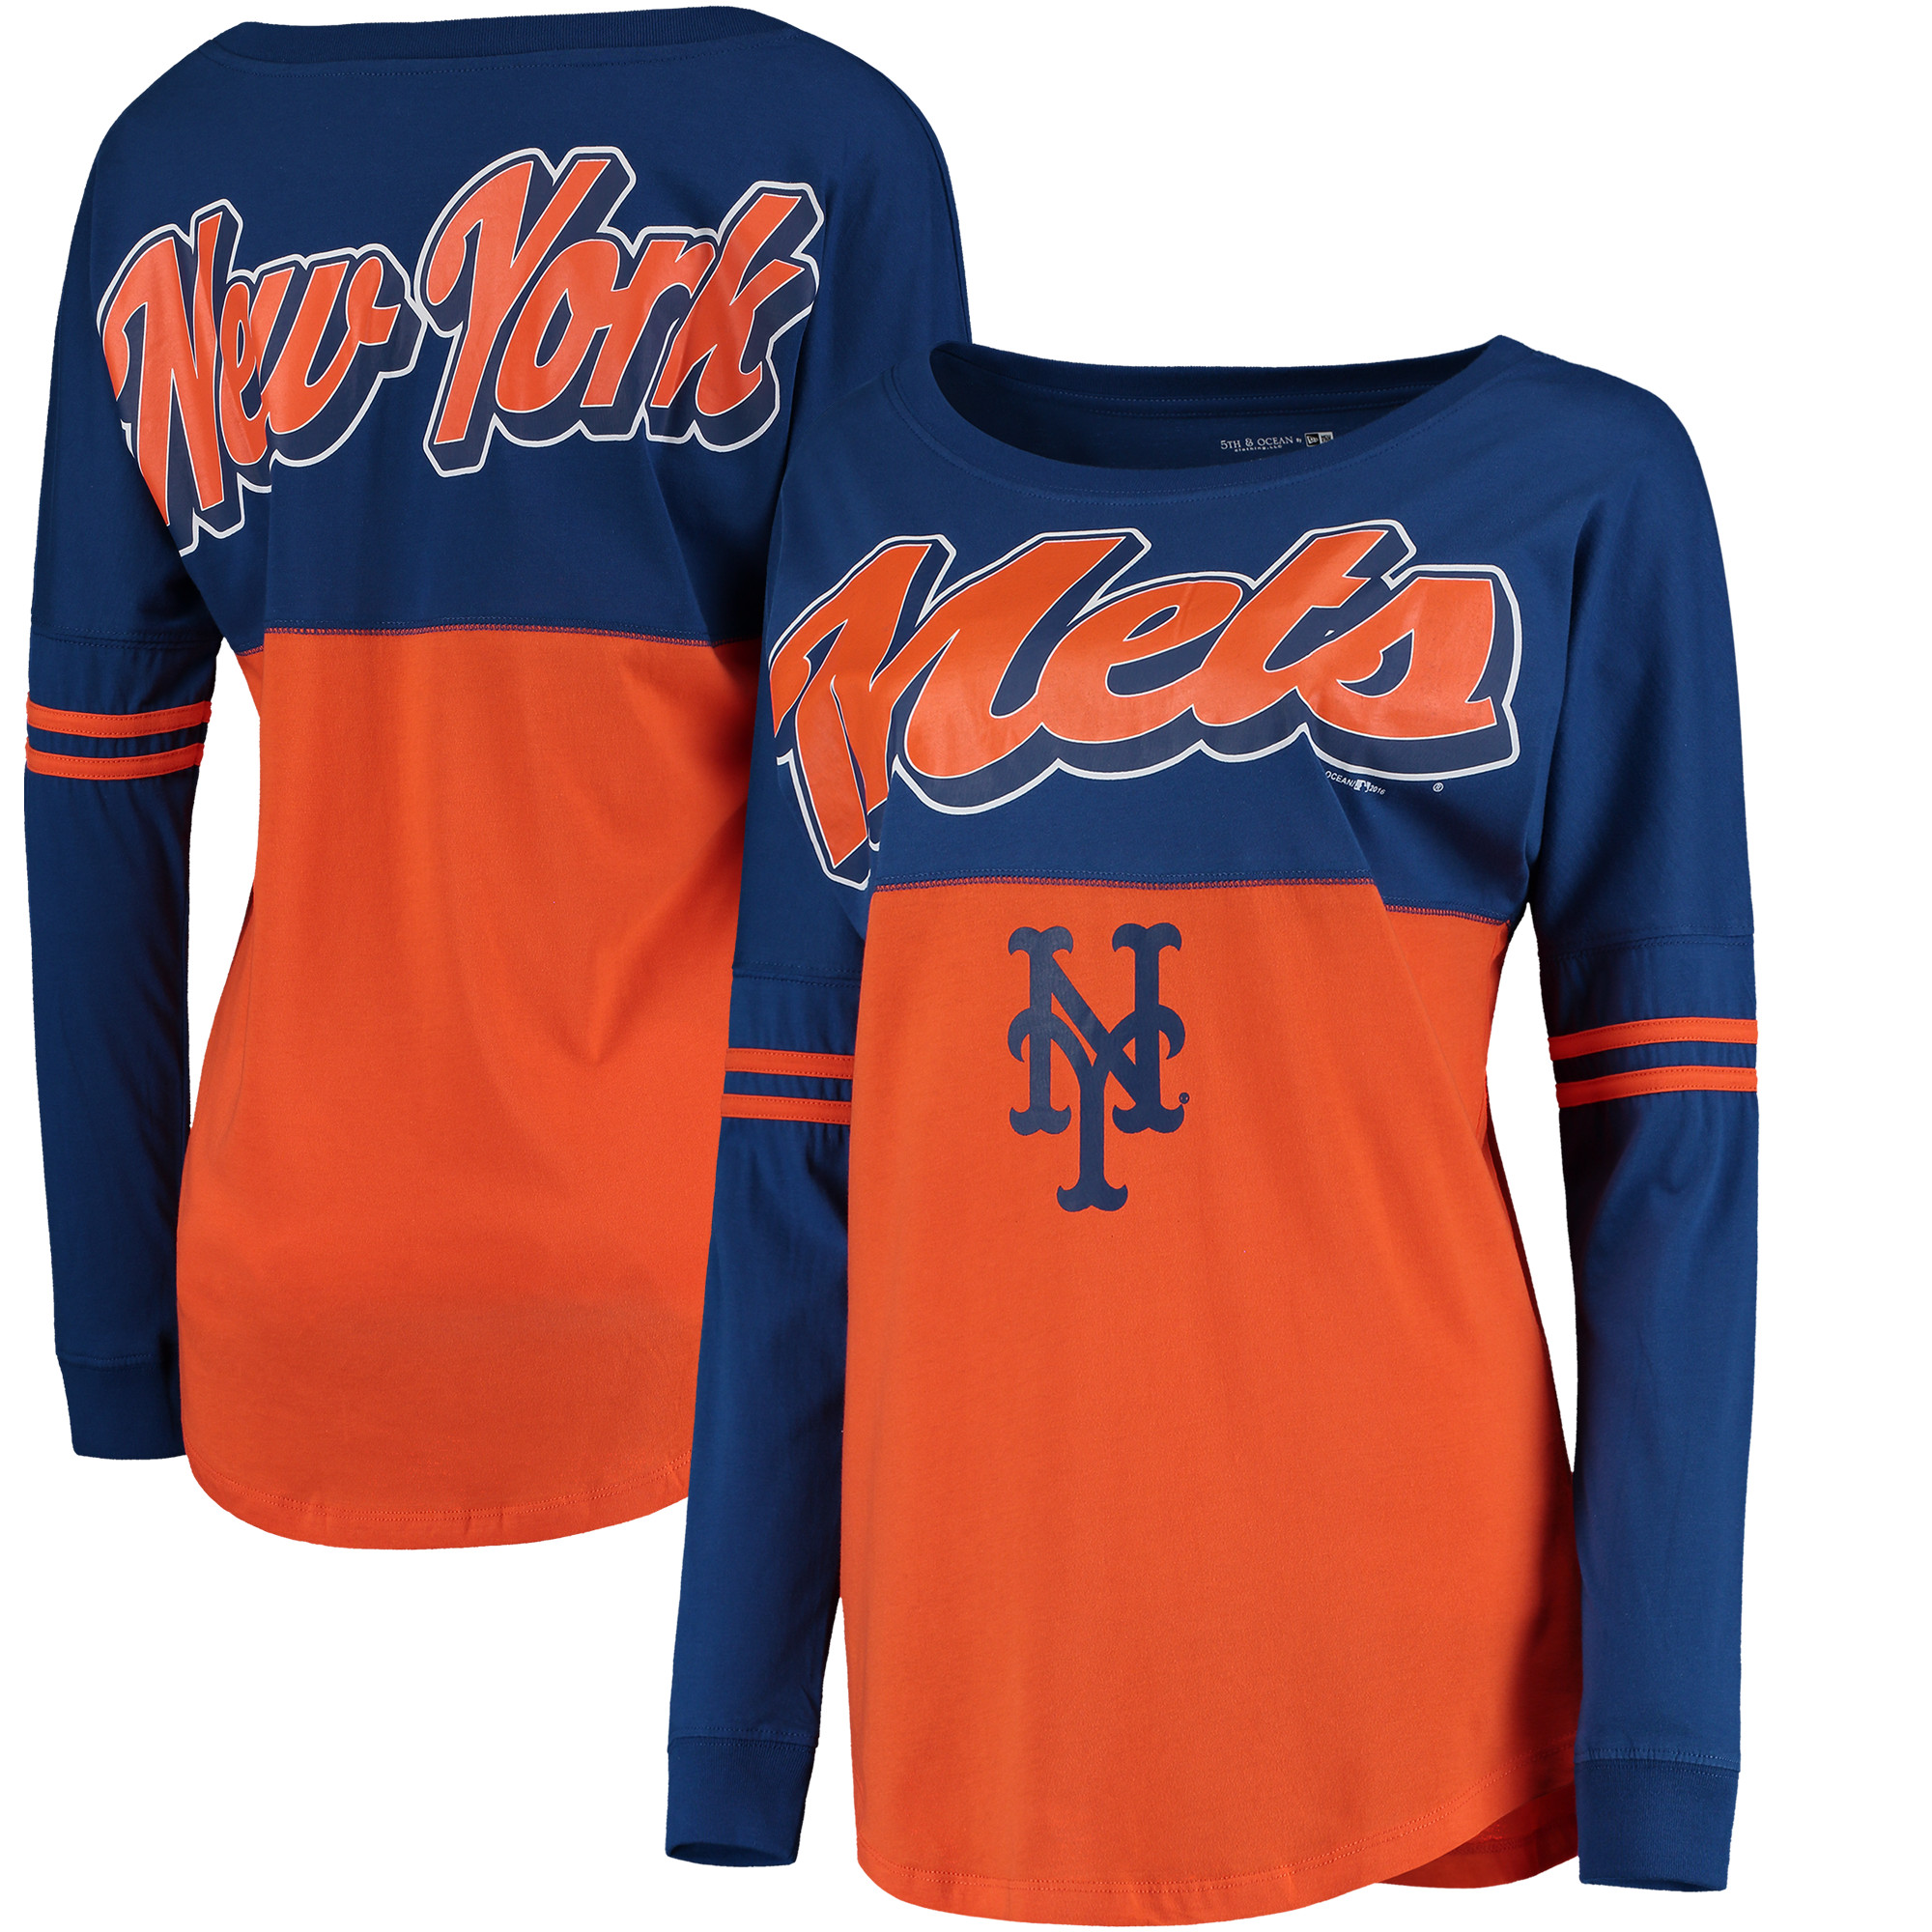 New York Mets 5th & Ocean by New Era Women's MLB Baby Jersey Varsity Crew Boyfriend Long Sleeve T-Shirt - Orange